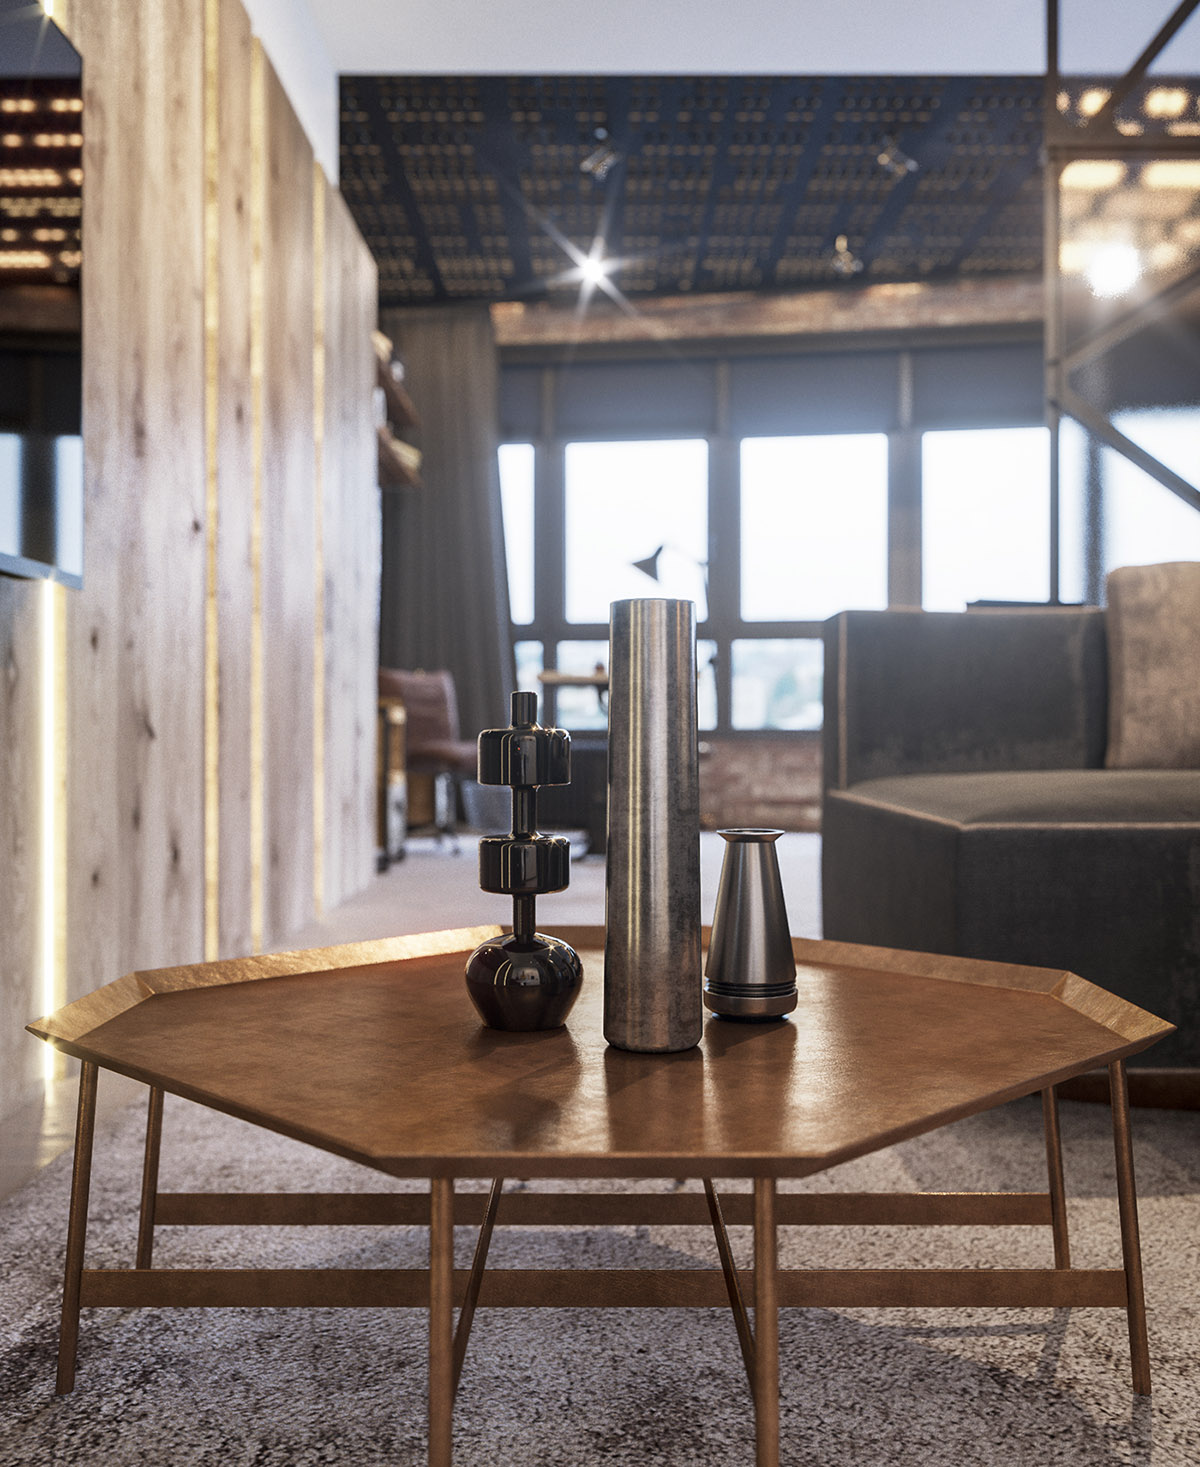 Four Types of Industrial Style Decor images 4